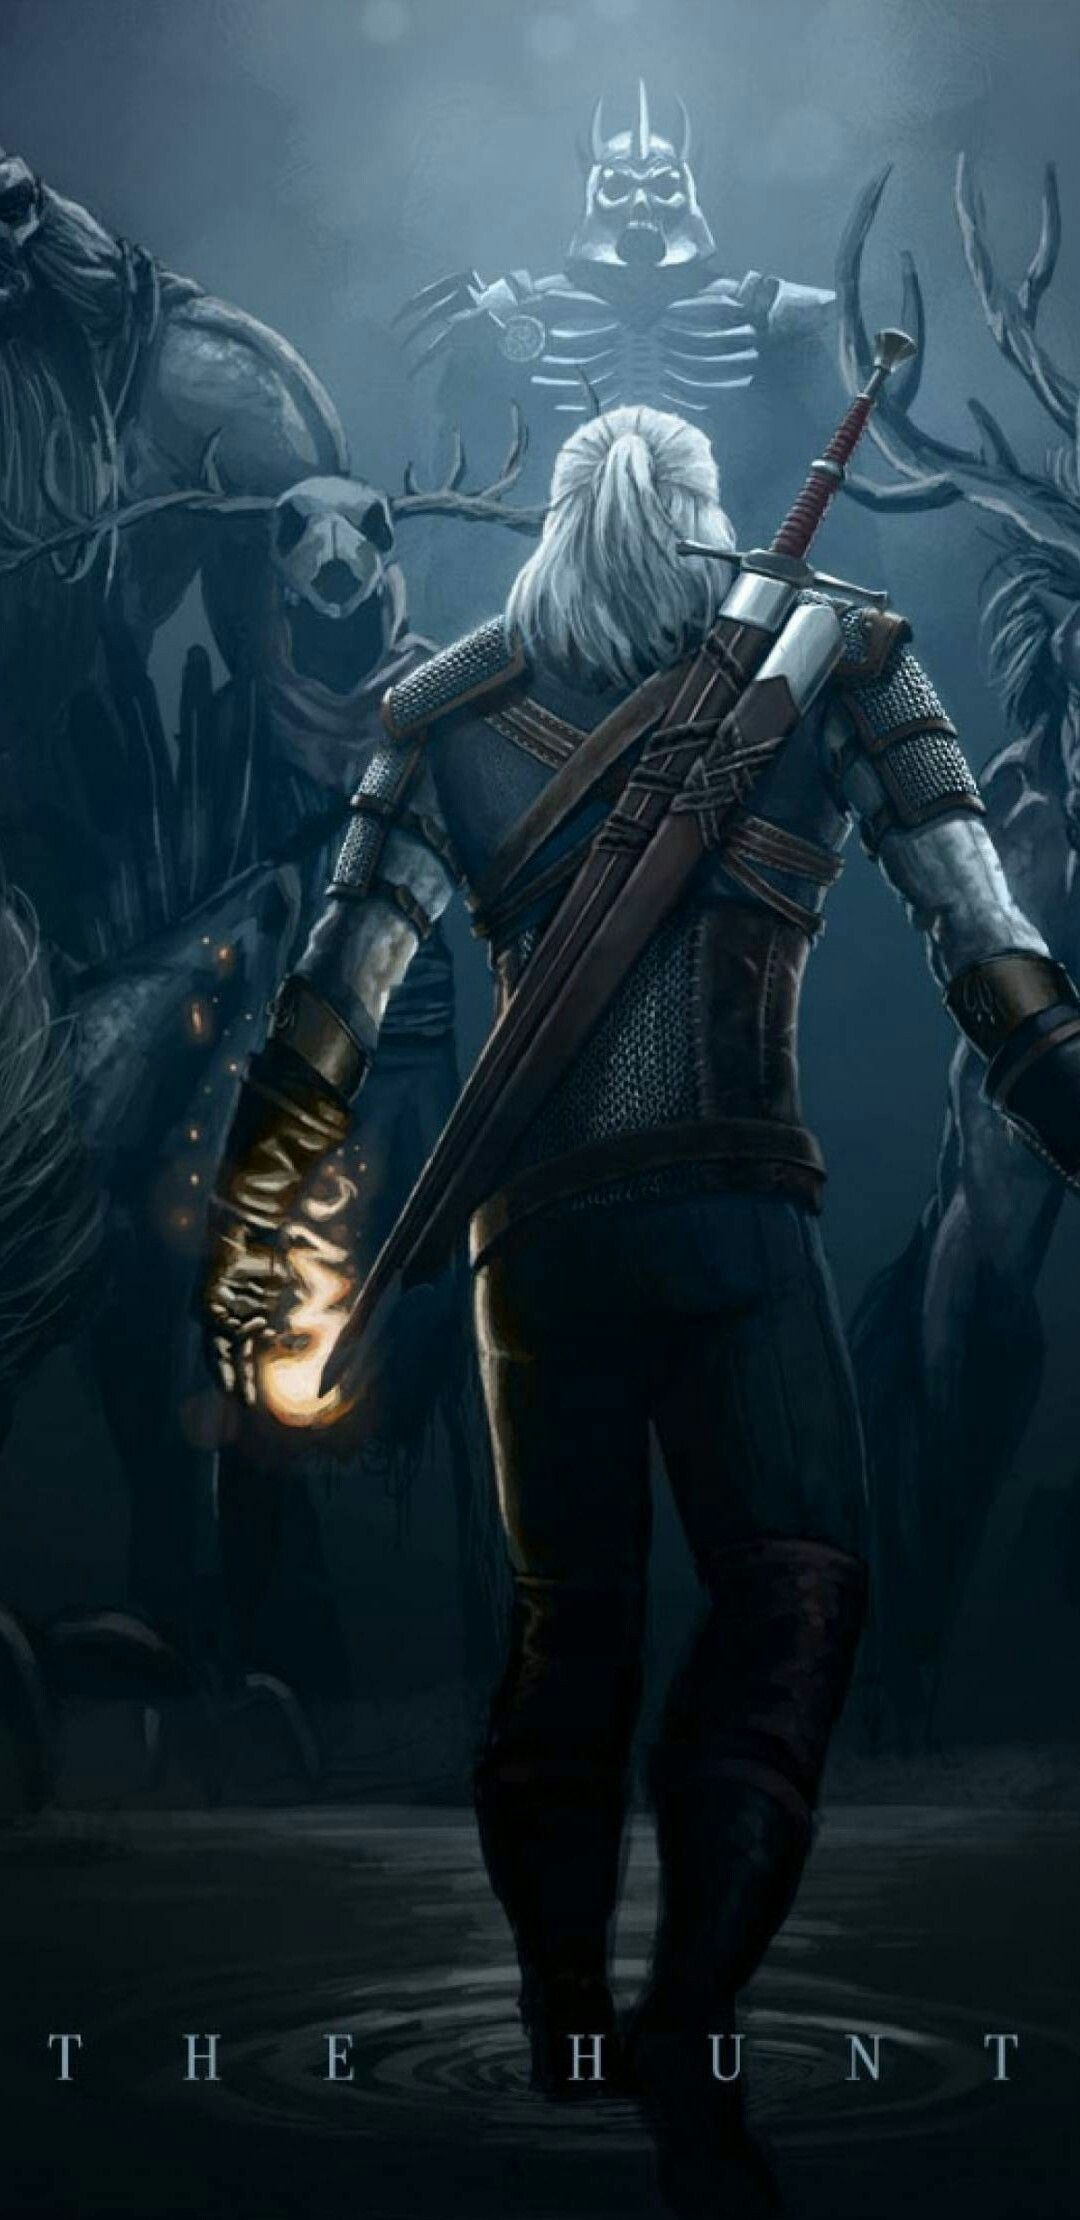 Pin By Pink Pueblo On The Witcher In 2020 The Witcher 3 The Witcher The Witcher Game